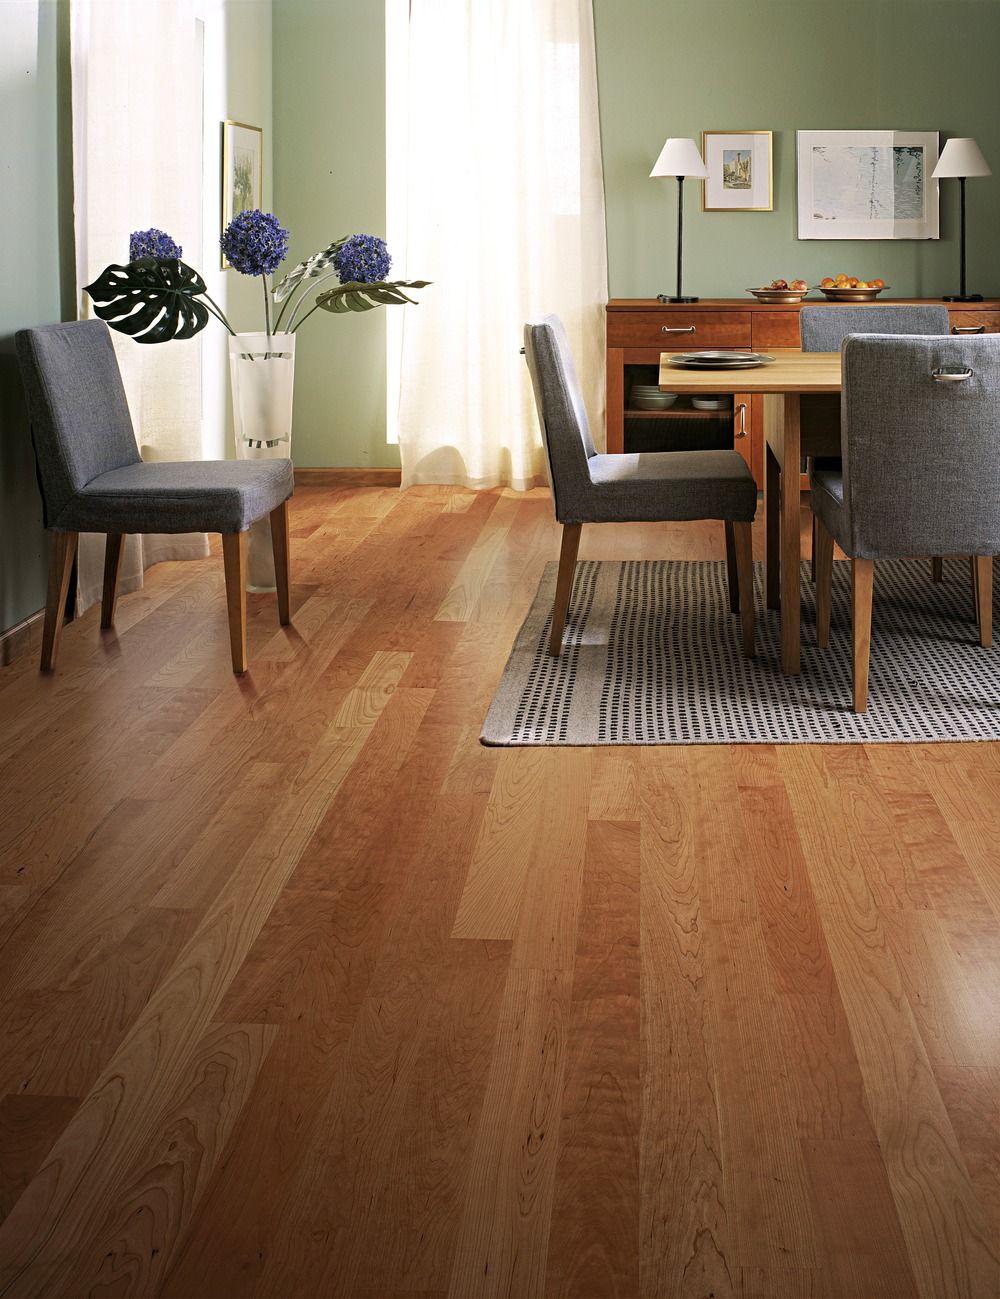 residential wooden floor design